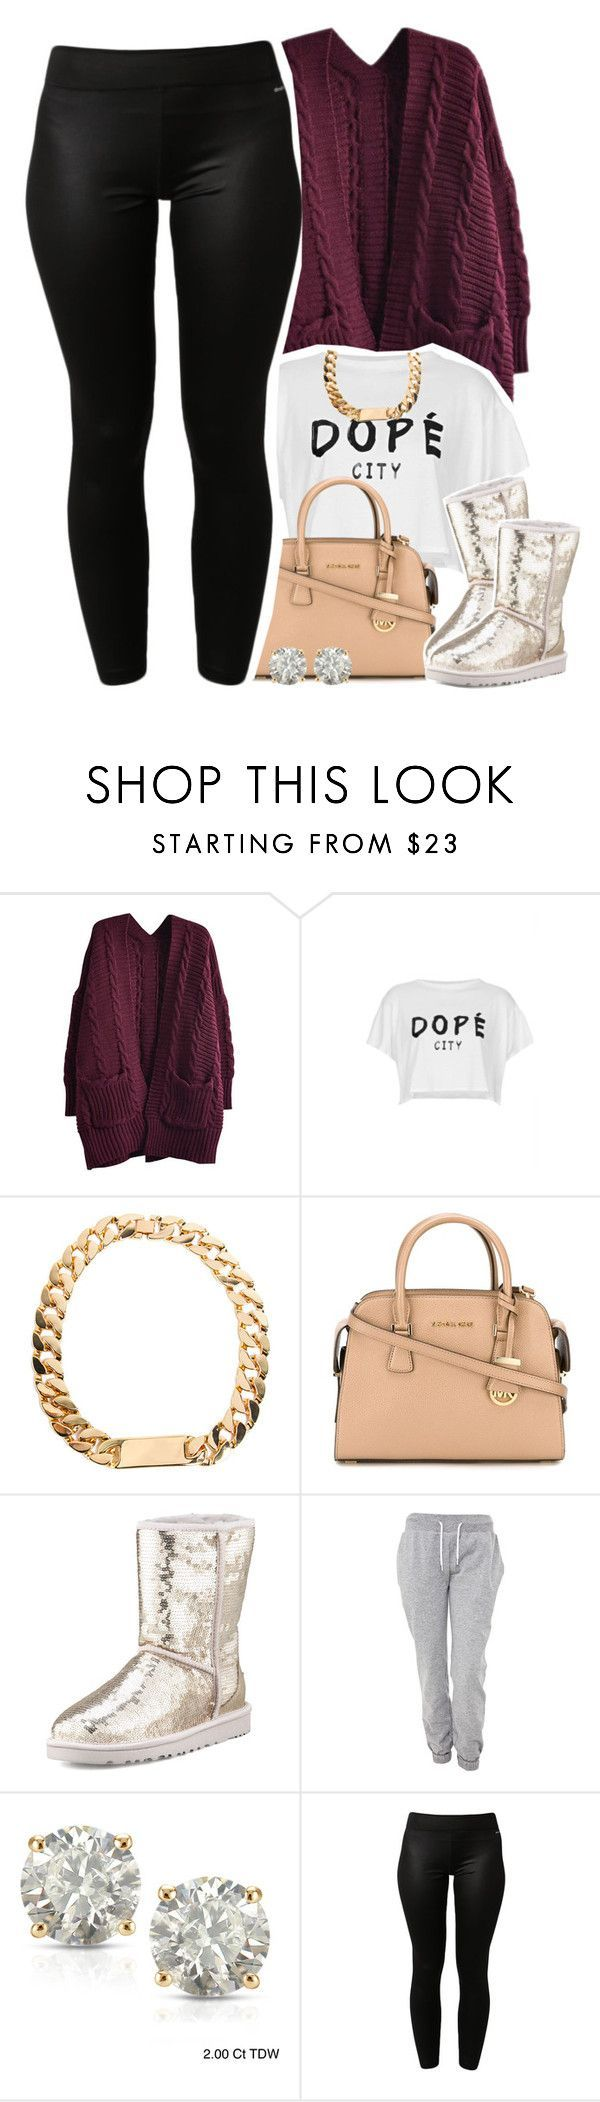 """""""Dopé"""" by lulu-foreva ❤ liked on Polyvore featuring Motel, MICHAEL Michael Kors, UGG Australia, White Label, Auriya, adidas and plus size clothing"""